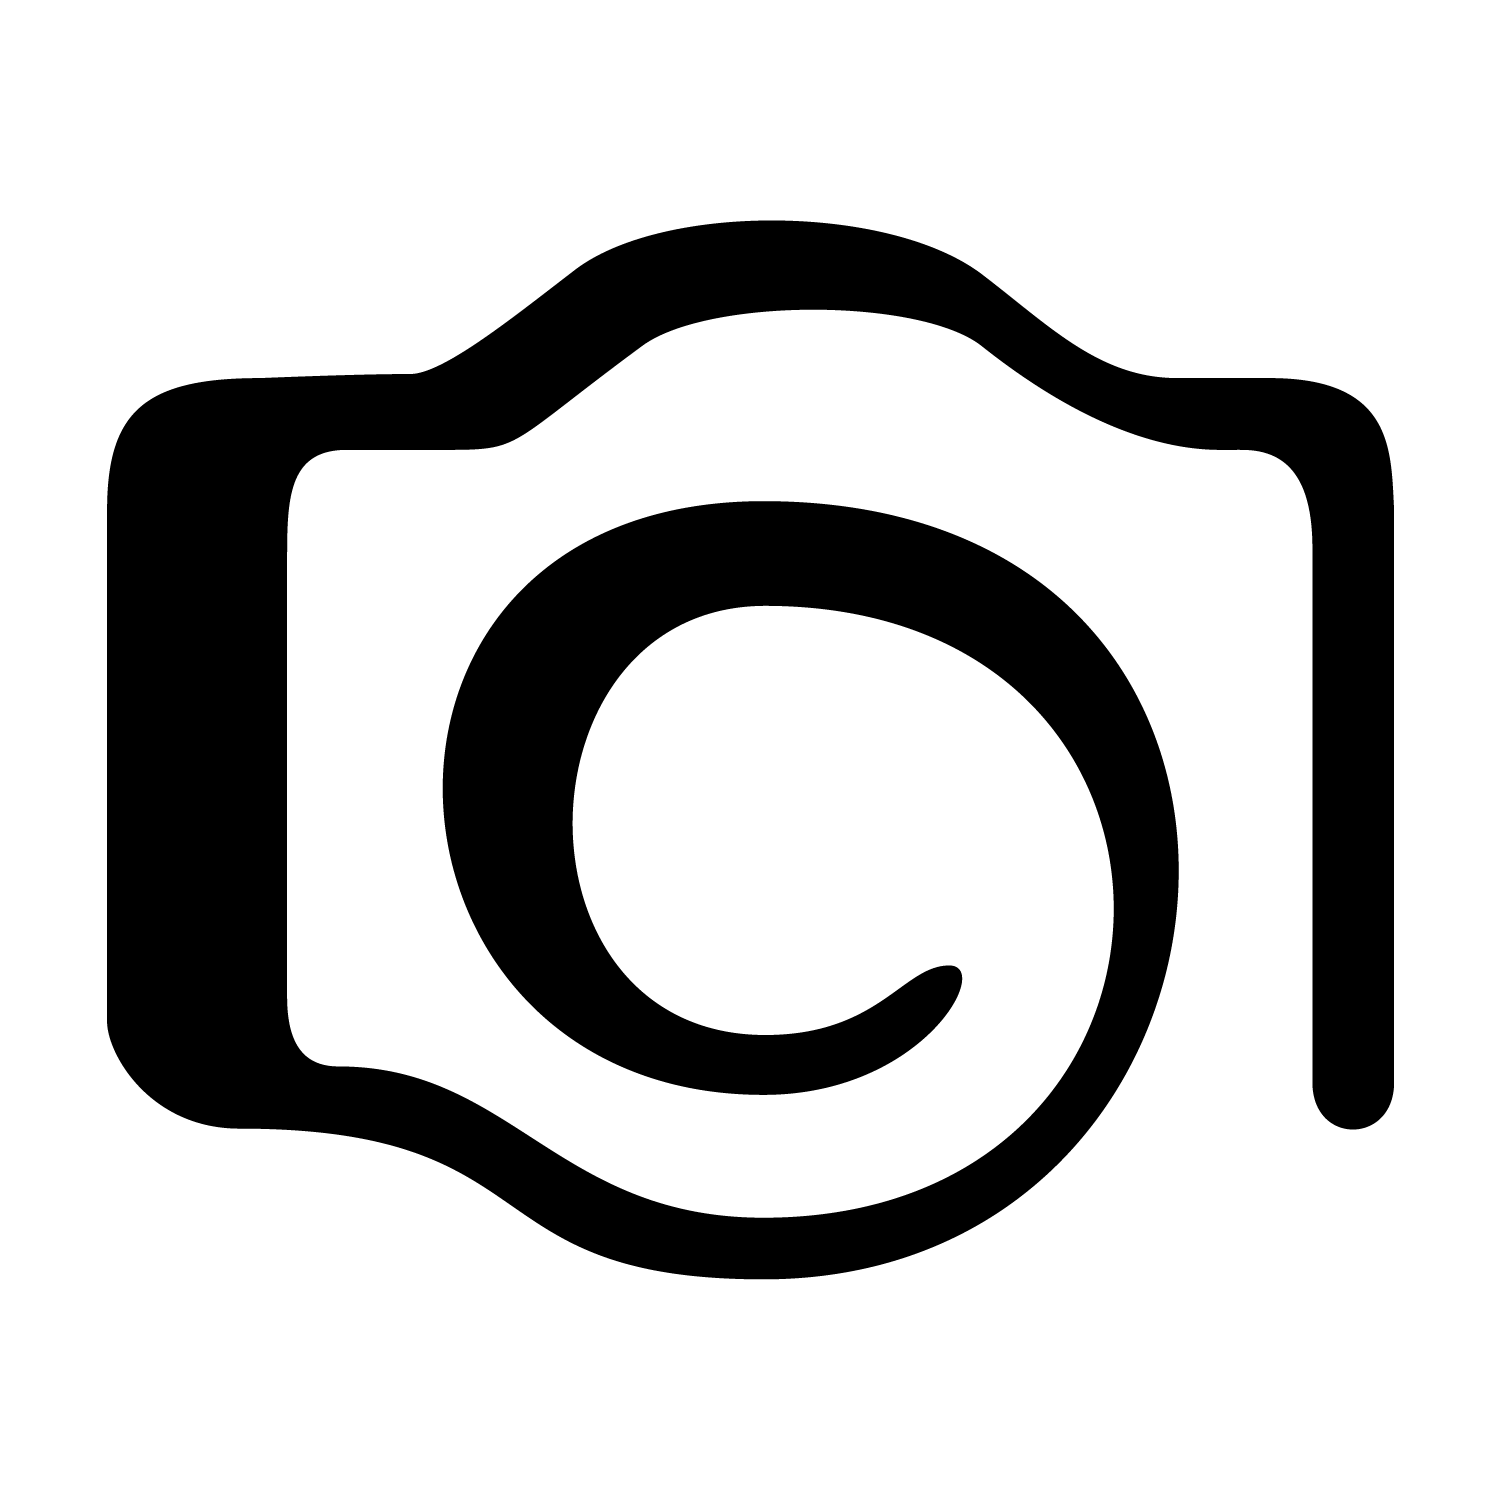 Logo Photography Camera Png | Best Digital Slr Camera Reviews